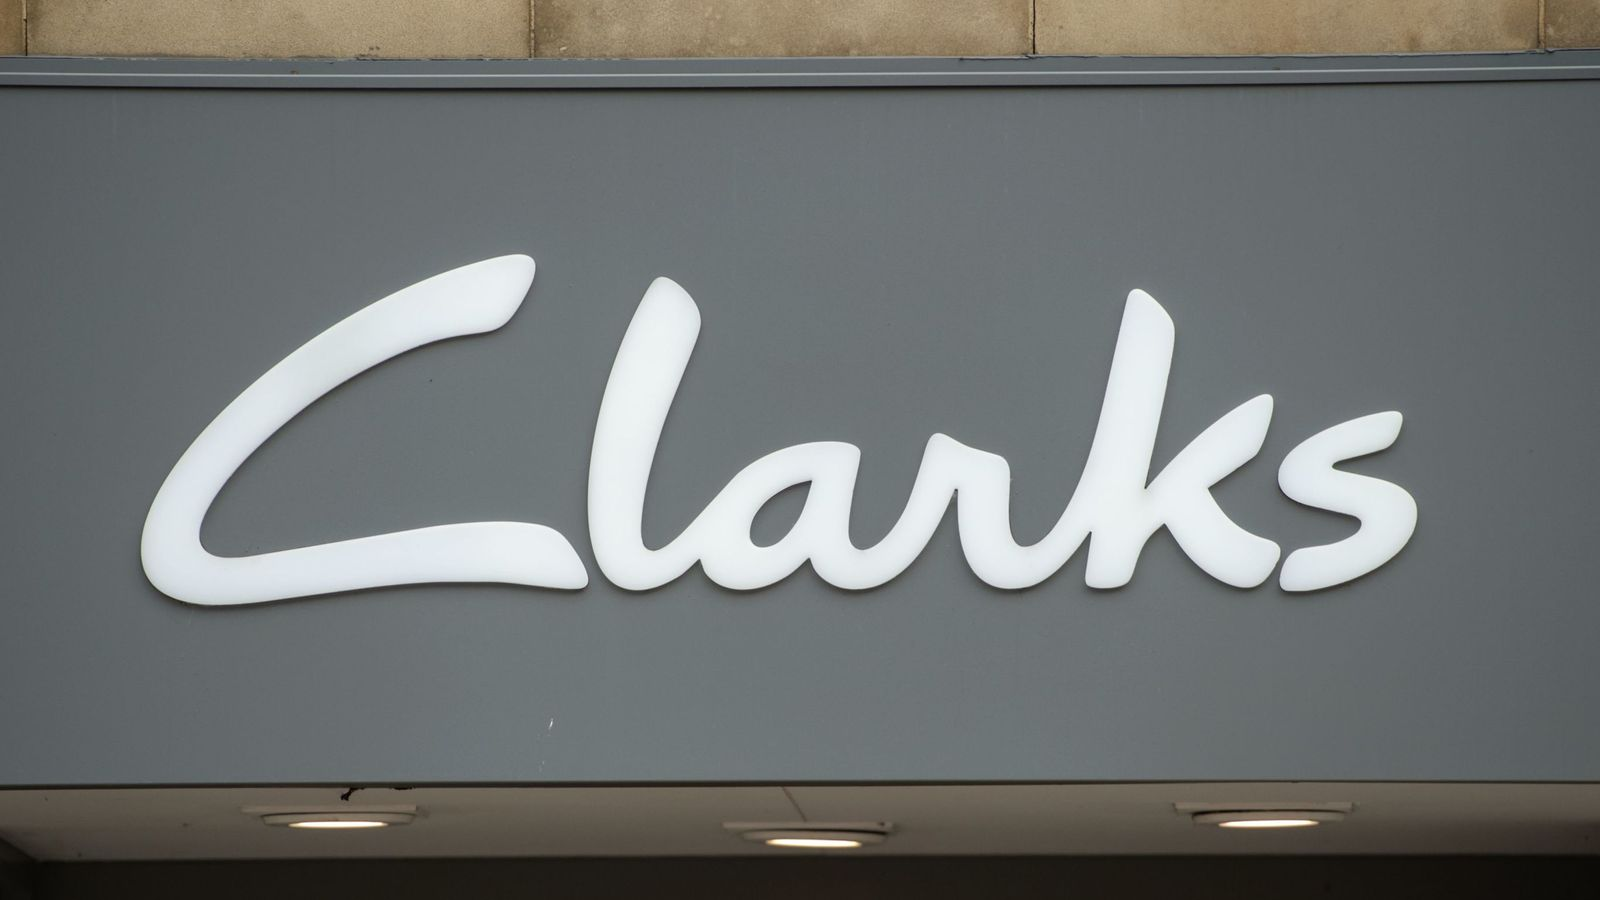 Football Pools owner strides into Clarks sale